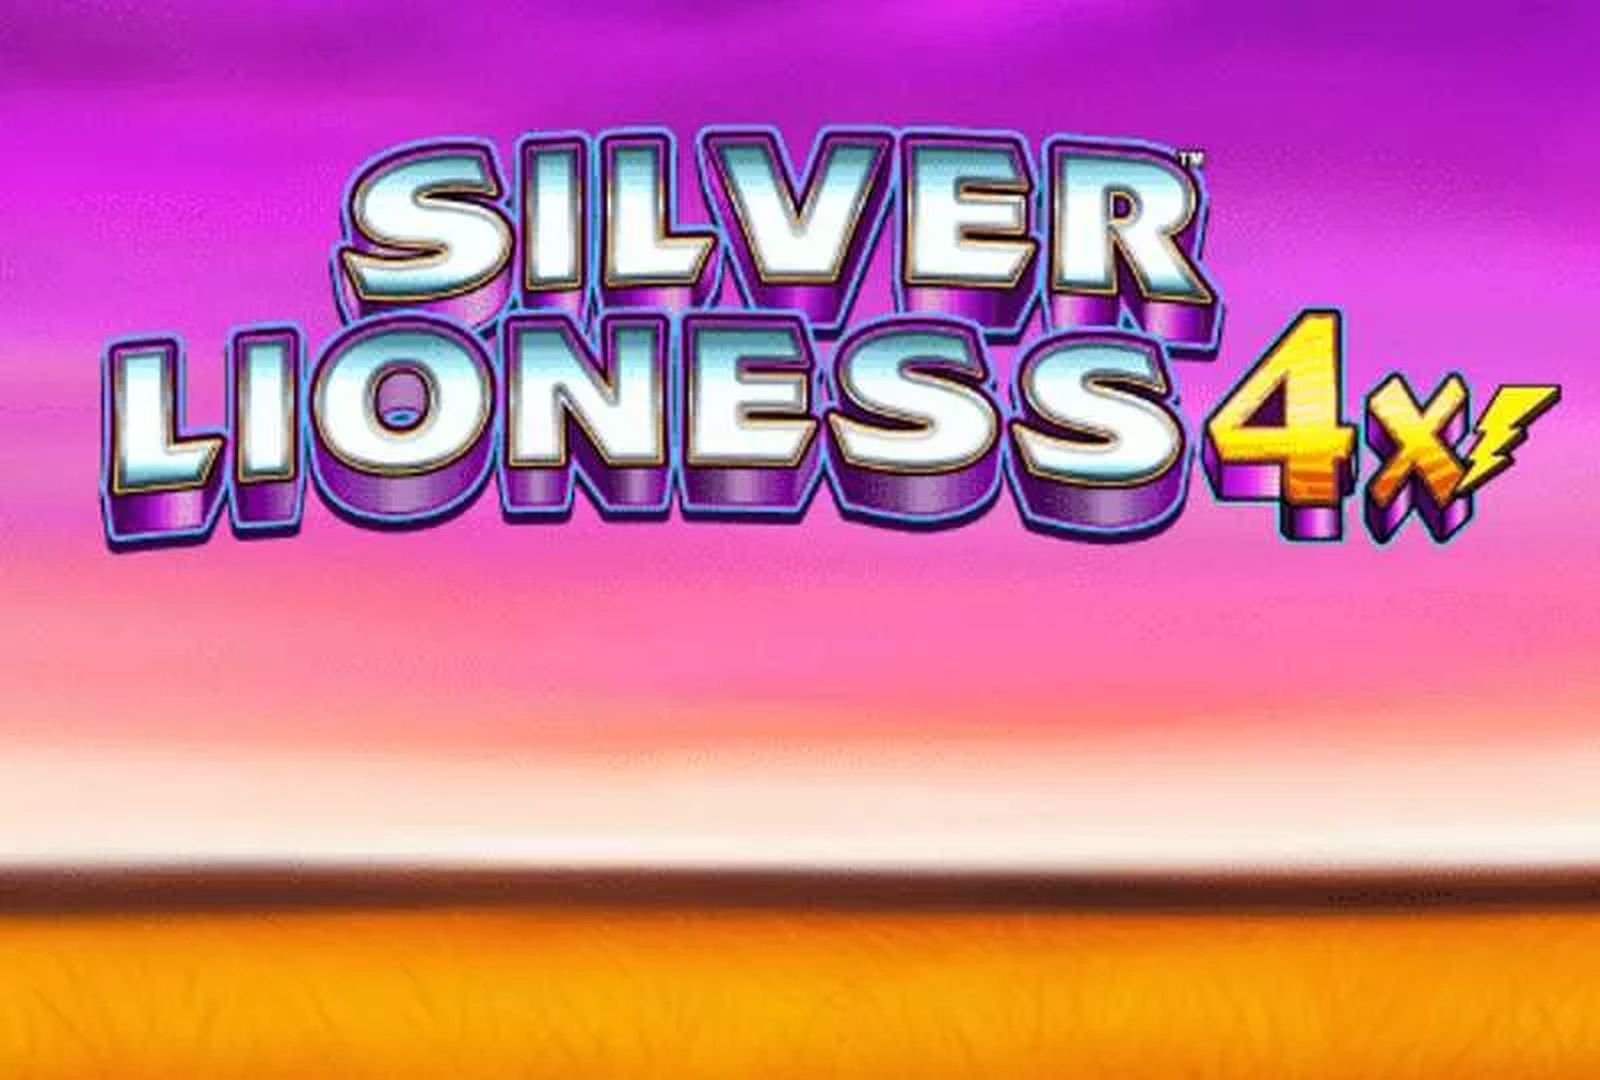 The Silver Lioness 4x Online Slot Demo Game by Lightning Box